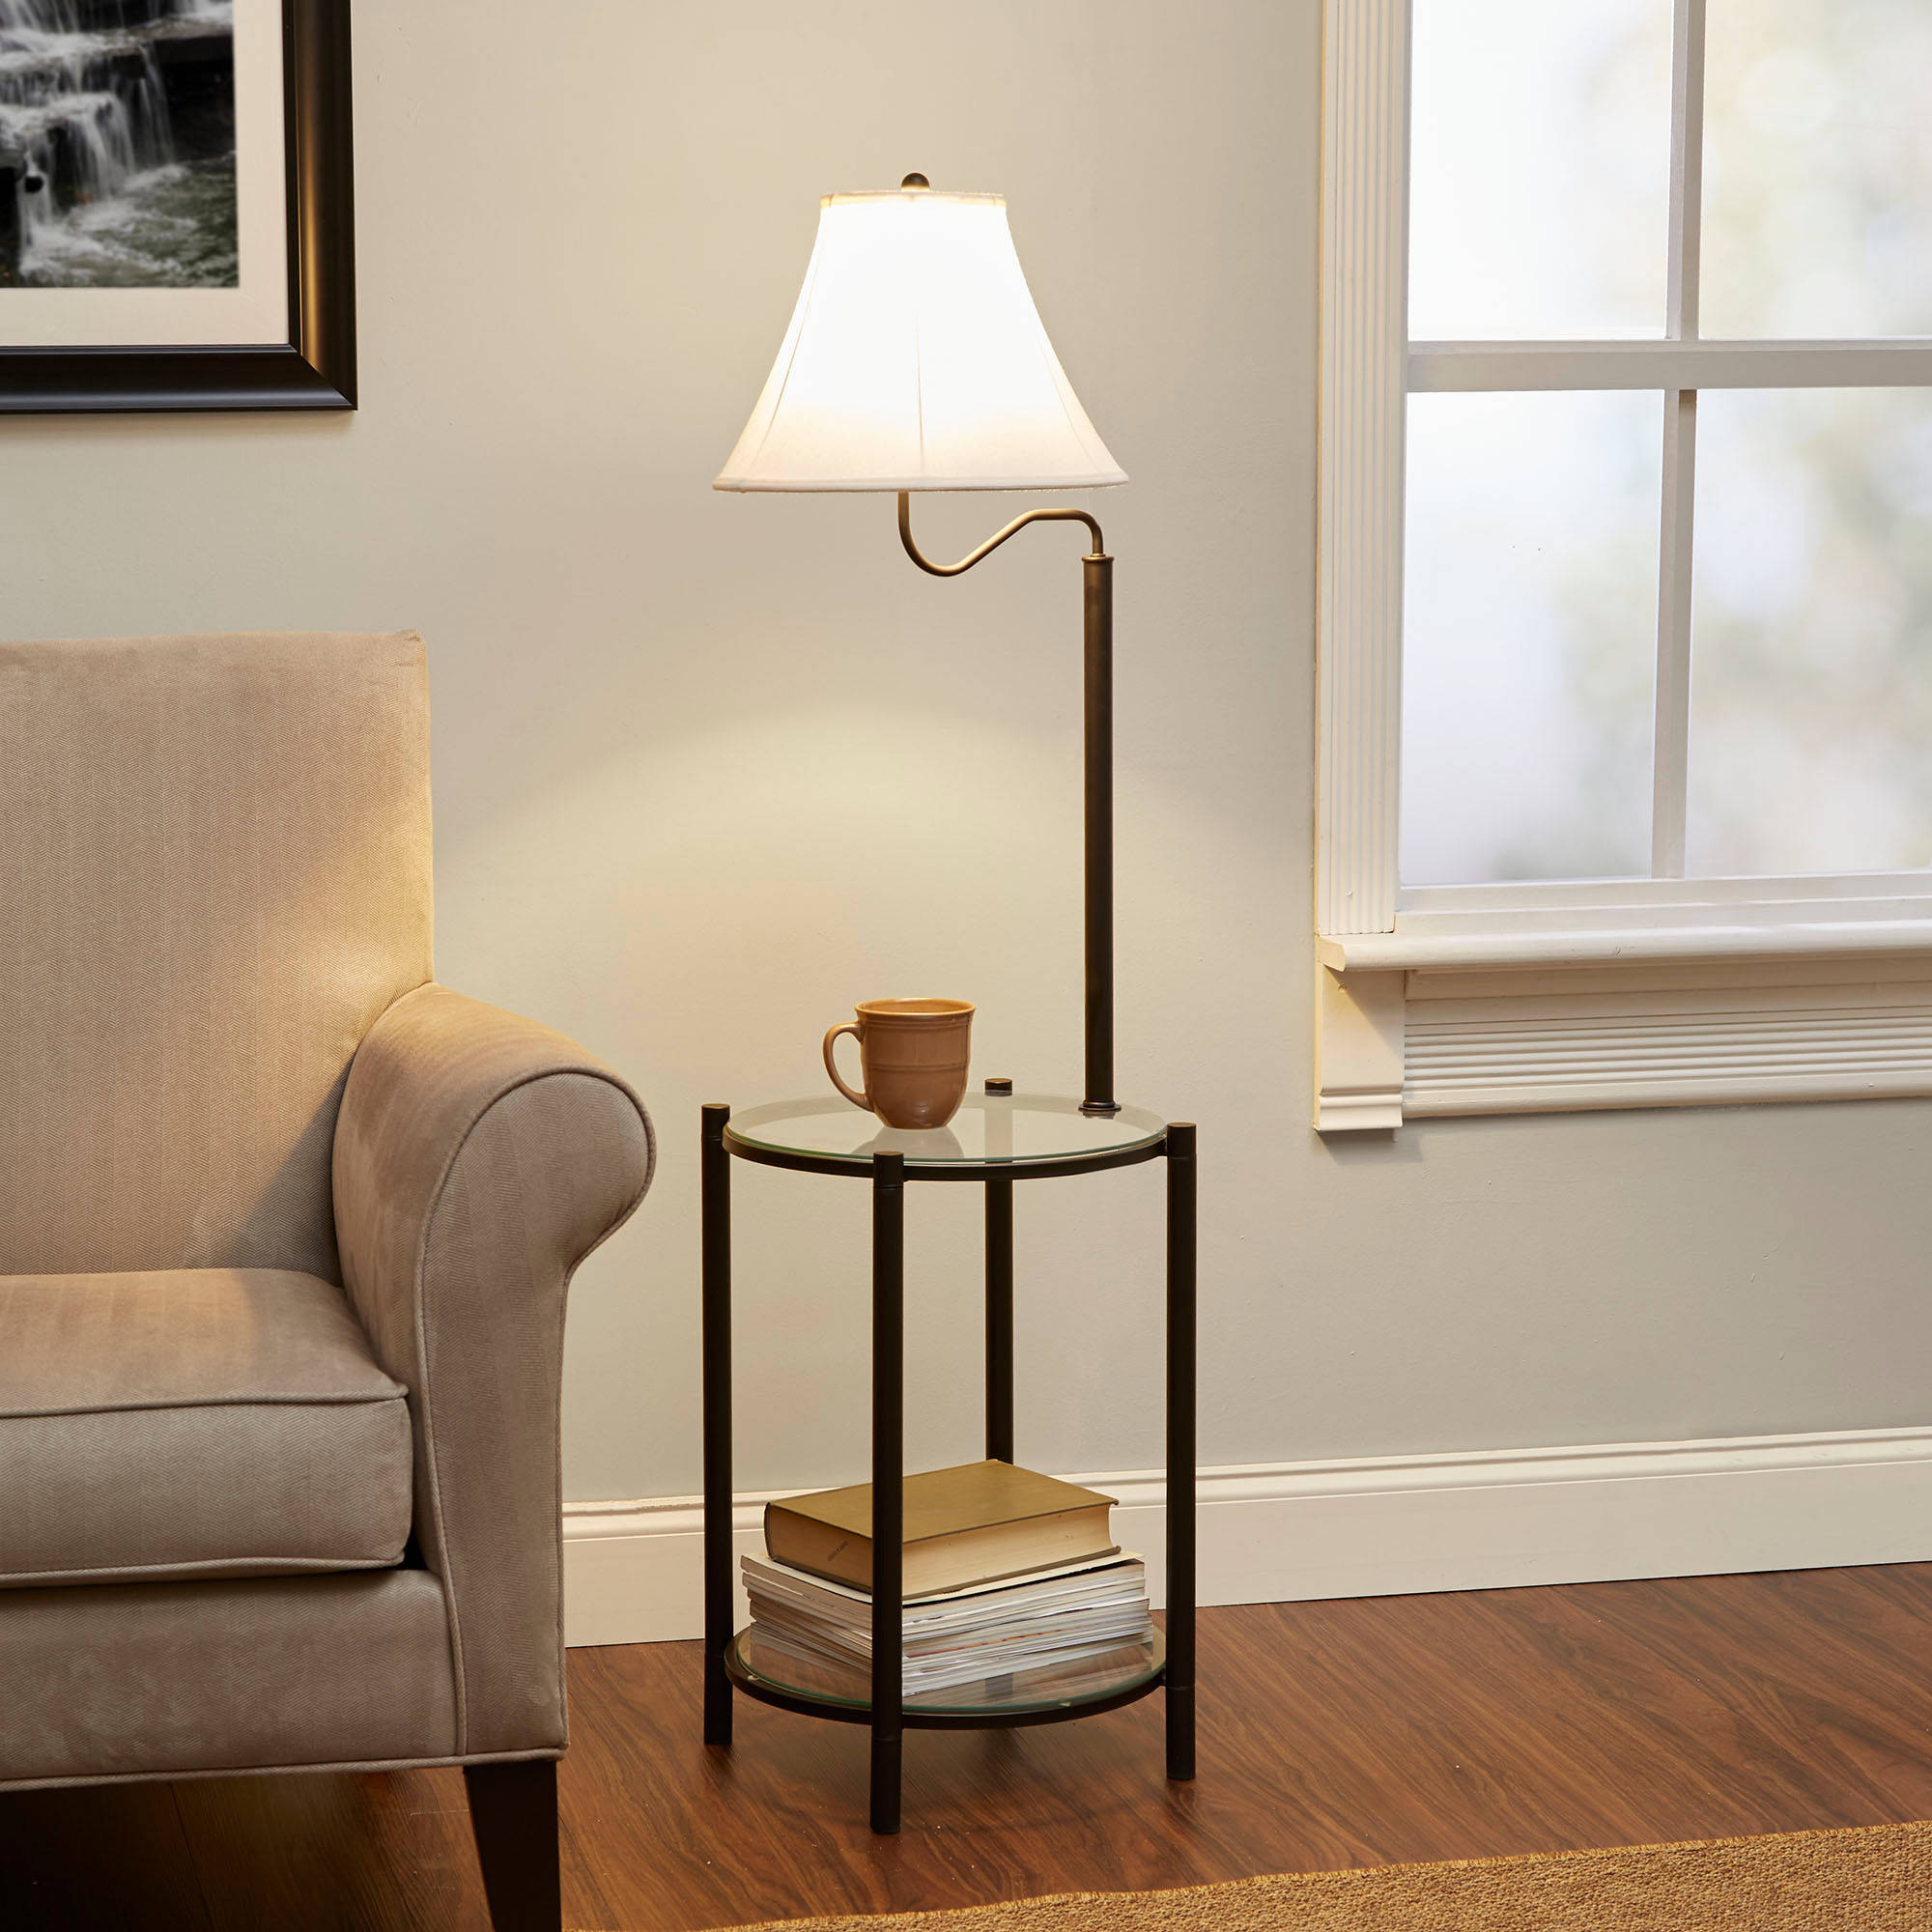 glass end table lamp combo matte black bedroom sofa couch side details about bottom shelf west elm console wooden for drawing room lift top coffee chest laura ashley bath set dark